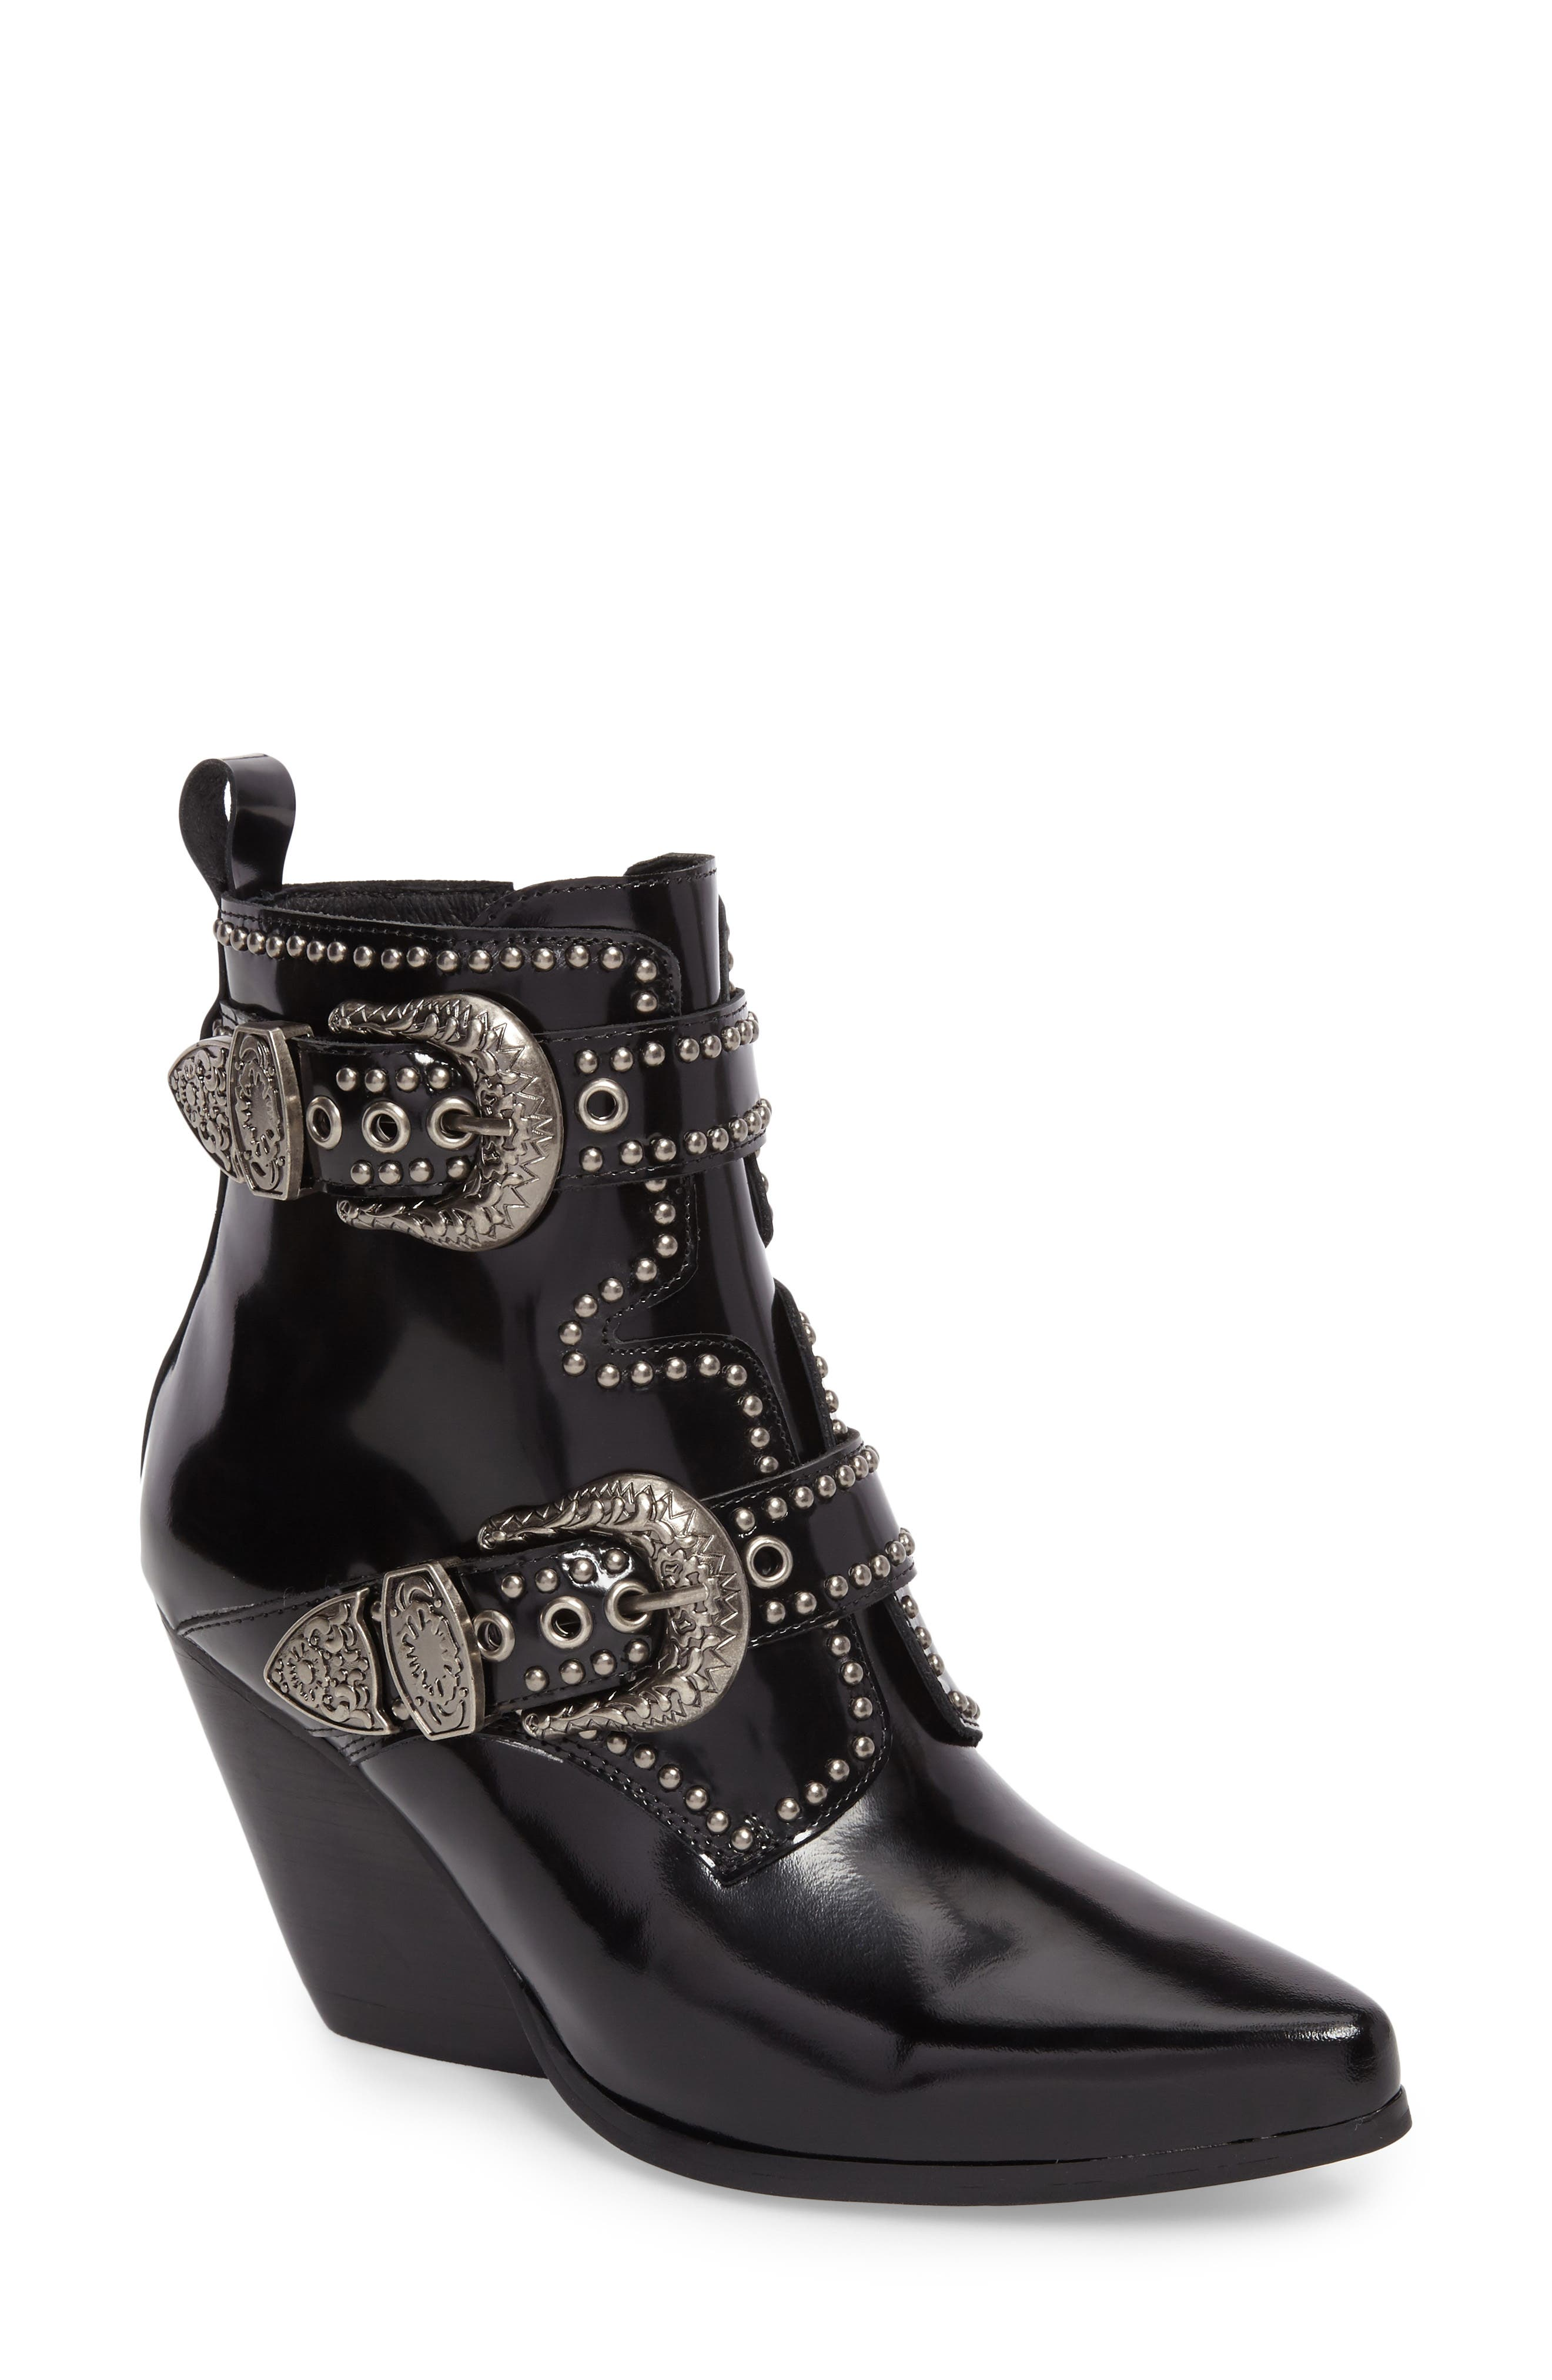 Welton Bootie,                             Main thumbnail 1, color,                             Black/ Silver Leather